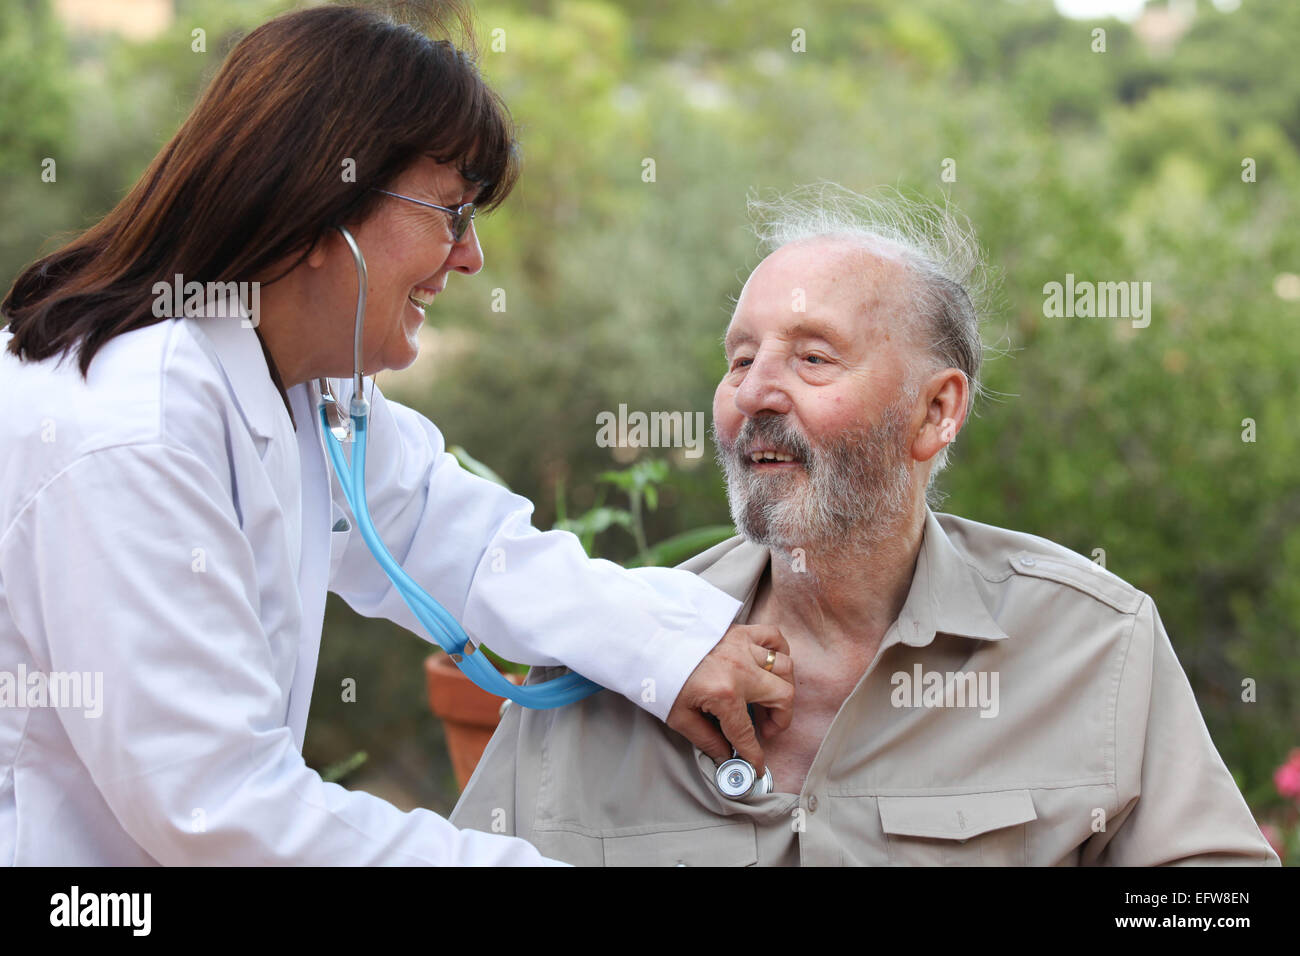 dr with stethoscope checking senior patients heat beat - Stock Image